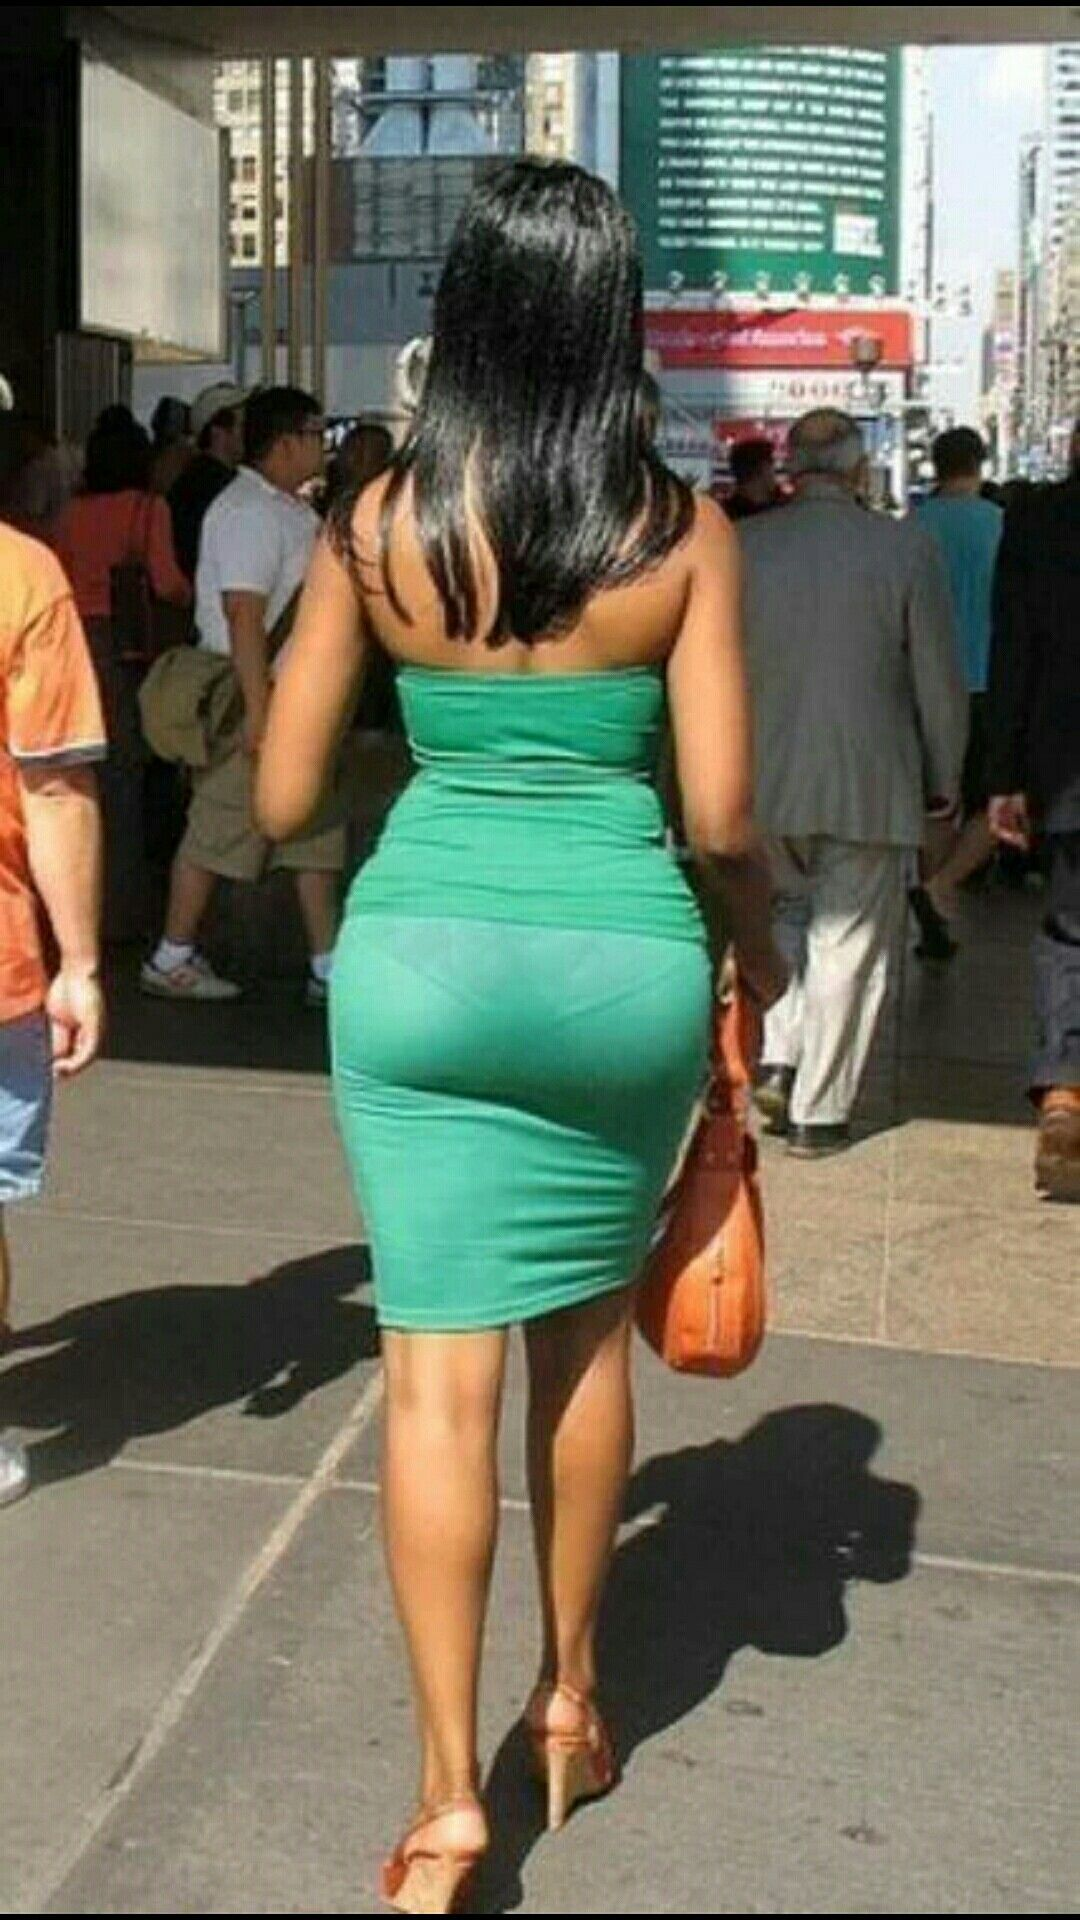 If a girl wears tight pants, then does that mean she is trying to show her big butt